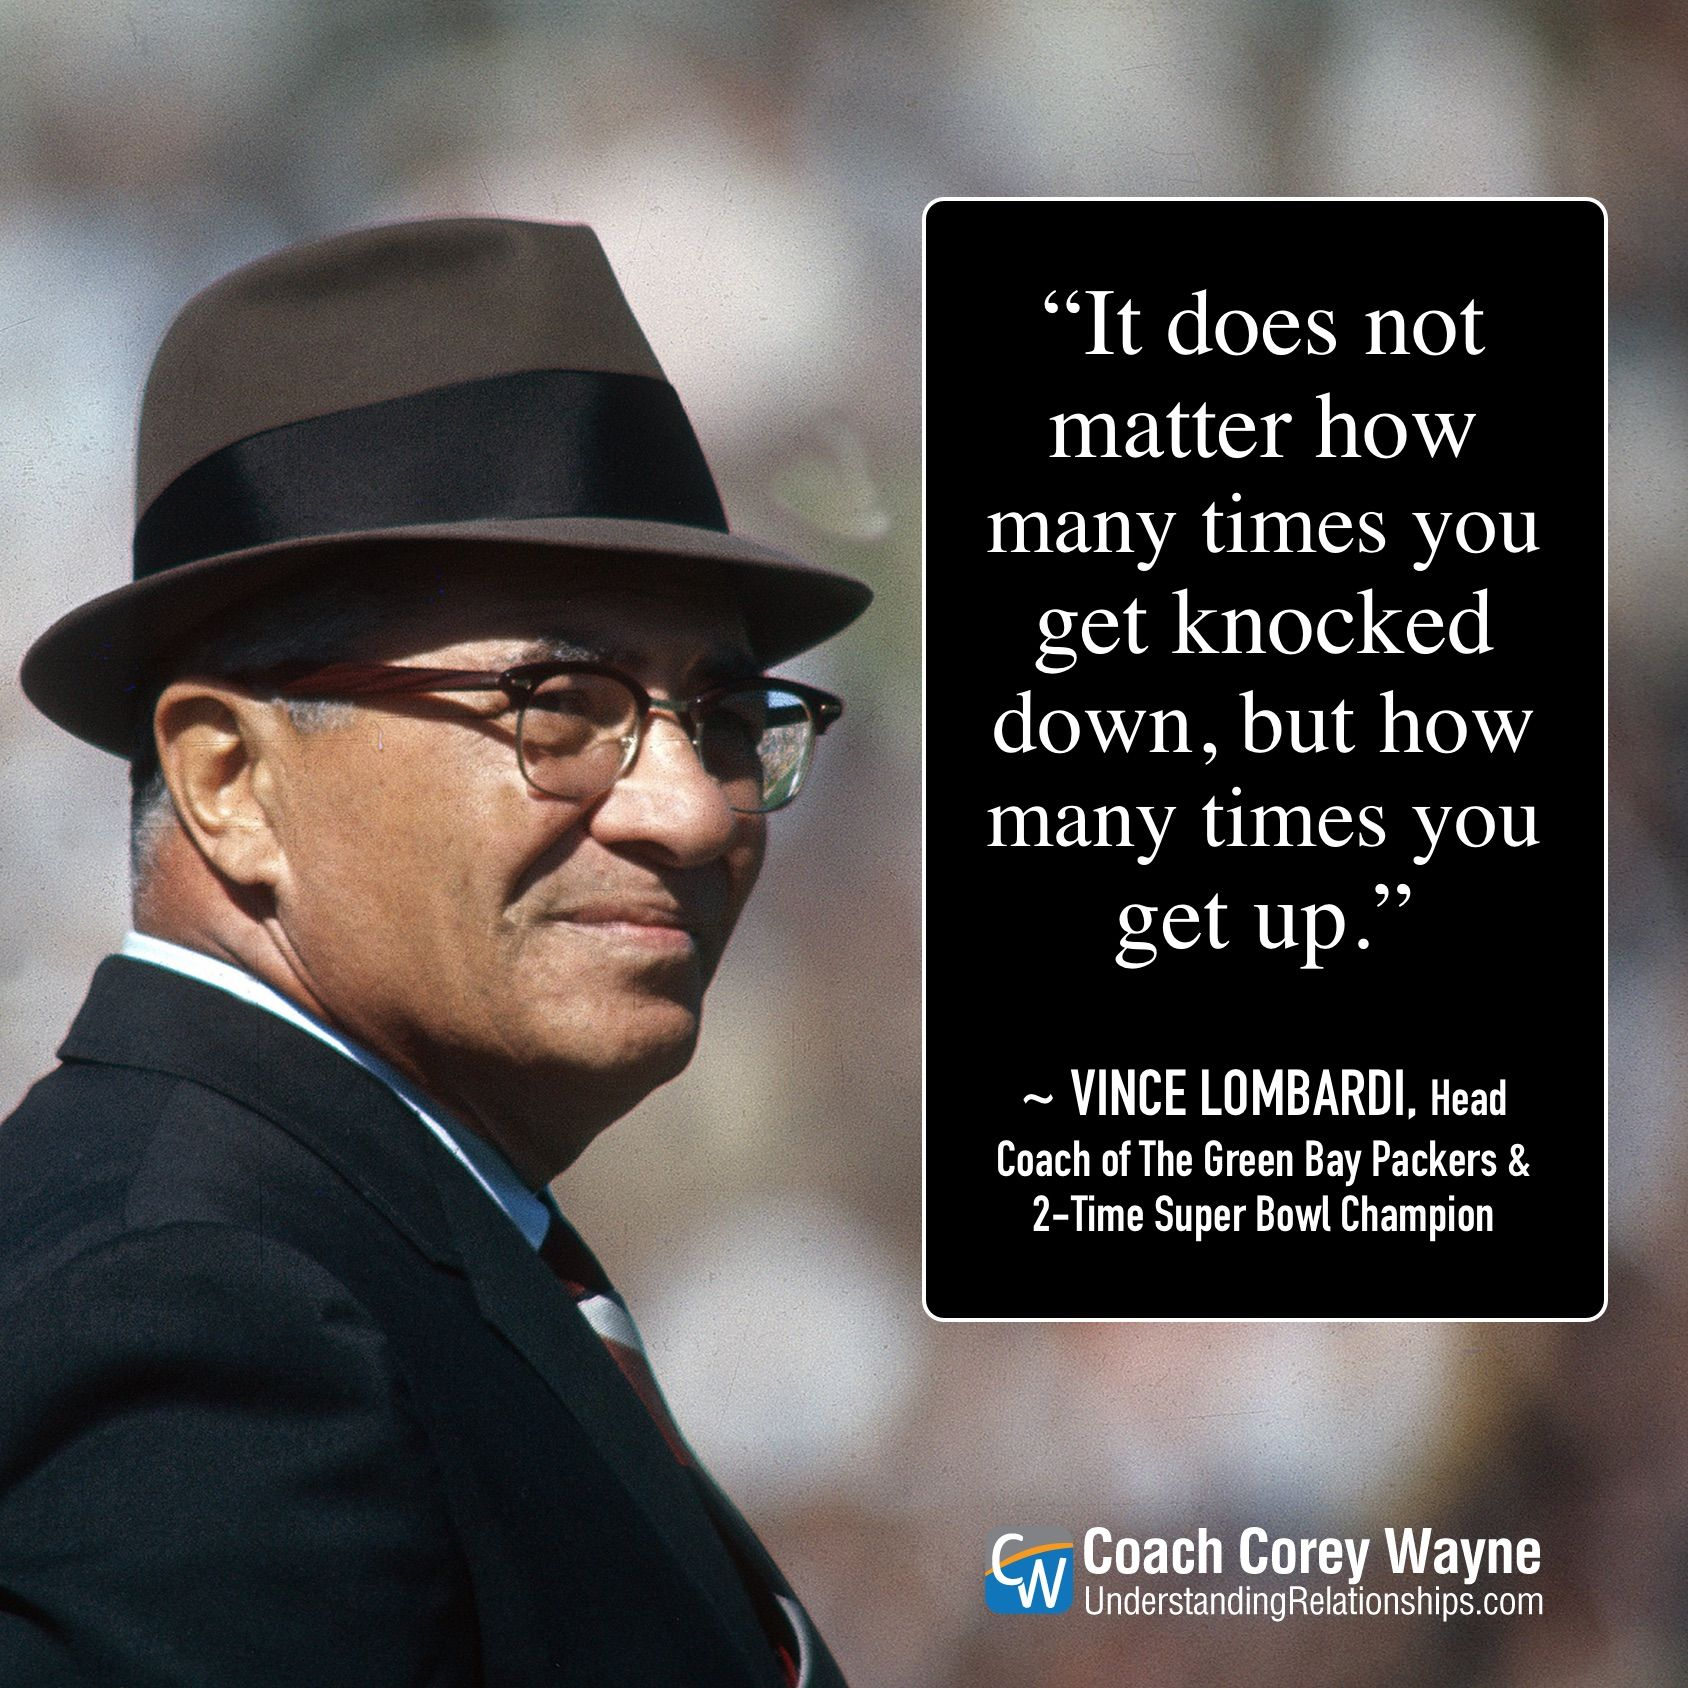 Vincelombardi Nfl Football Greenbaypackers Coaching